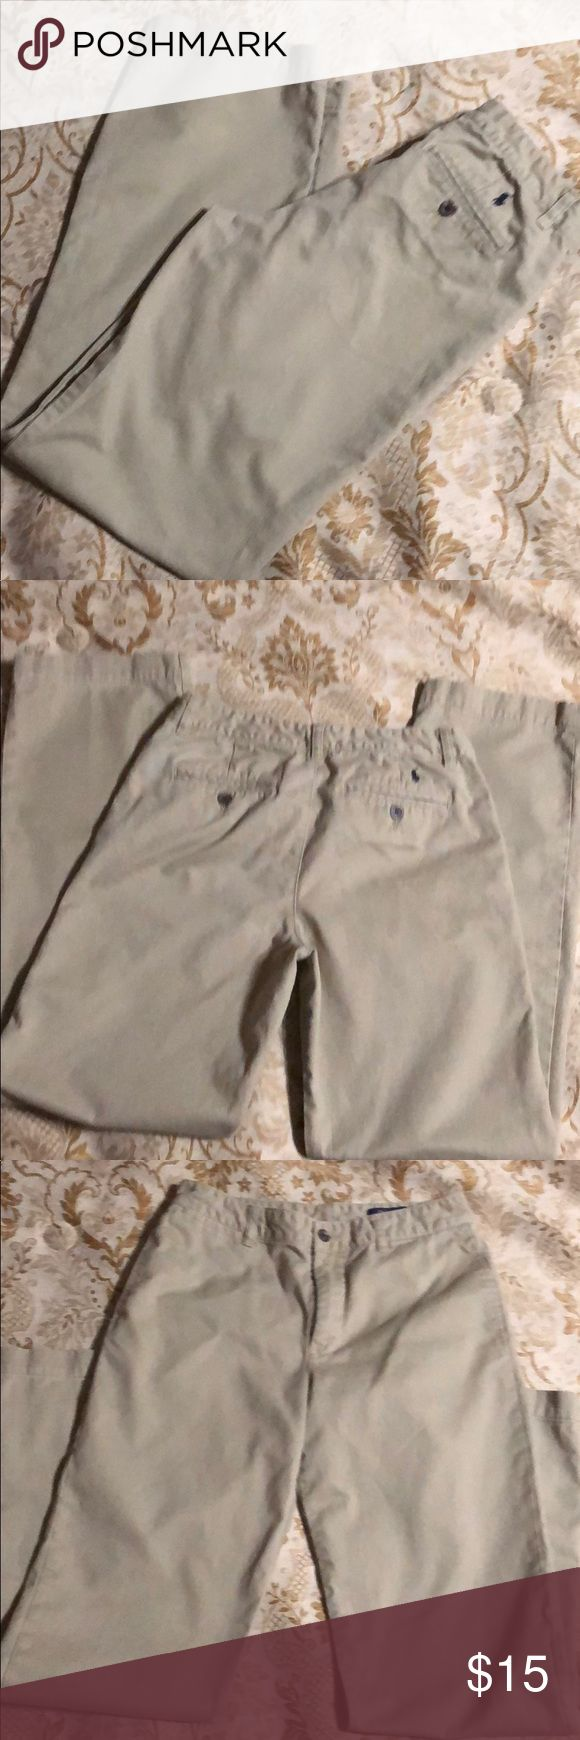 Boys kaki Ralf Lauren pants Gently used in great condition Polo by Ralph Lauren Bottoms Casual